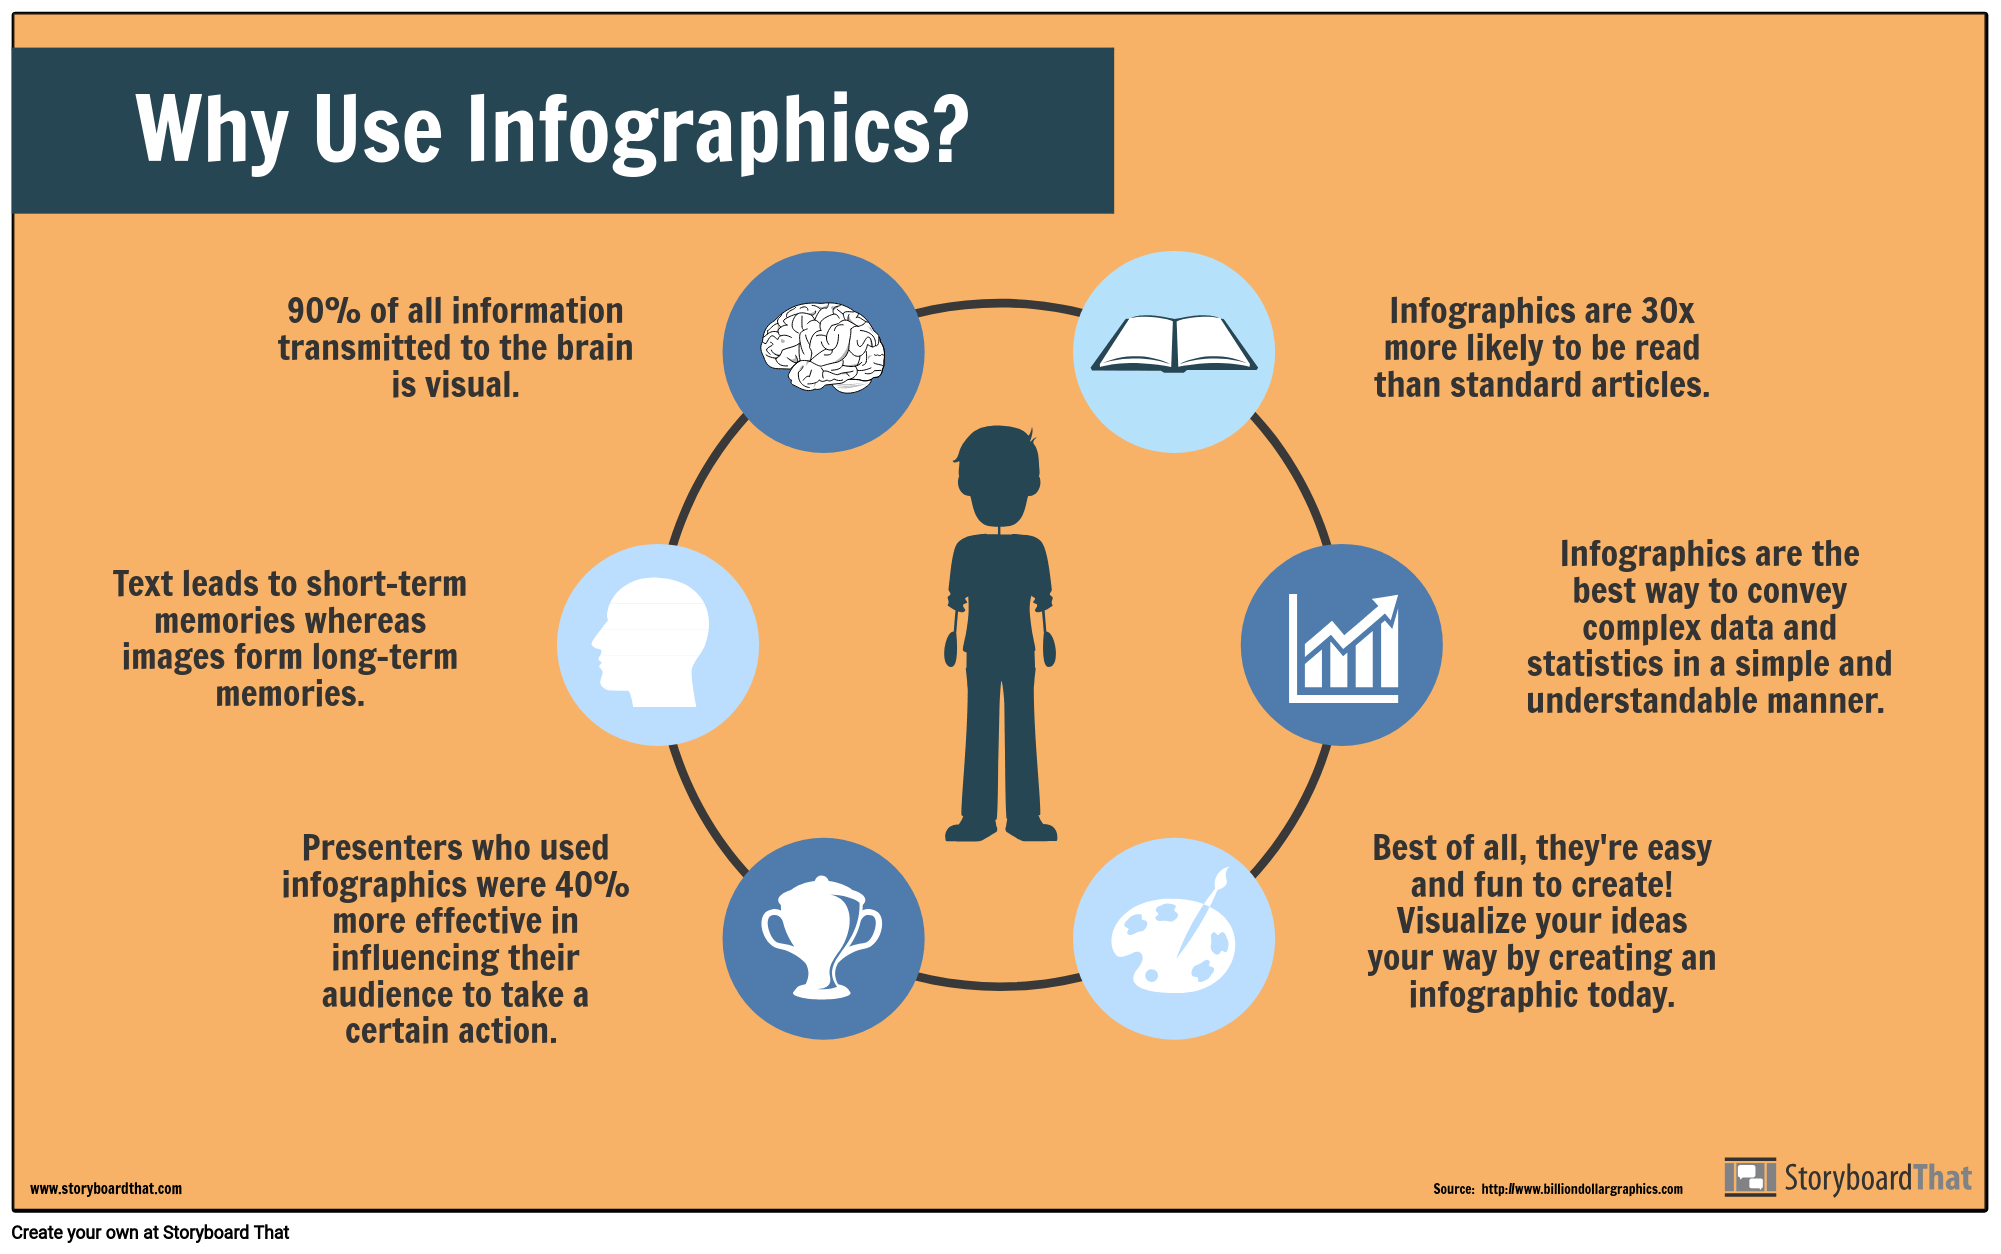 Infographics are easy to make with Storyboard That